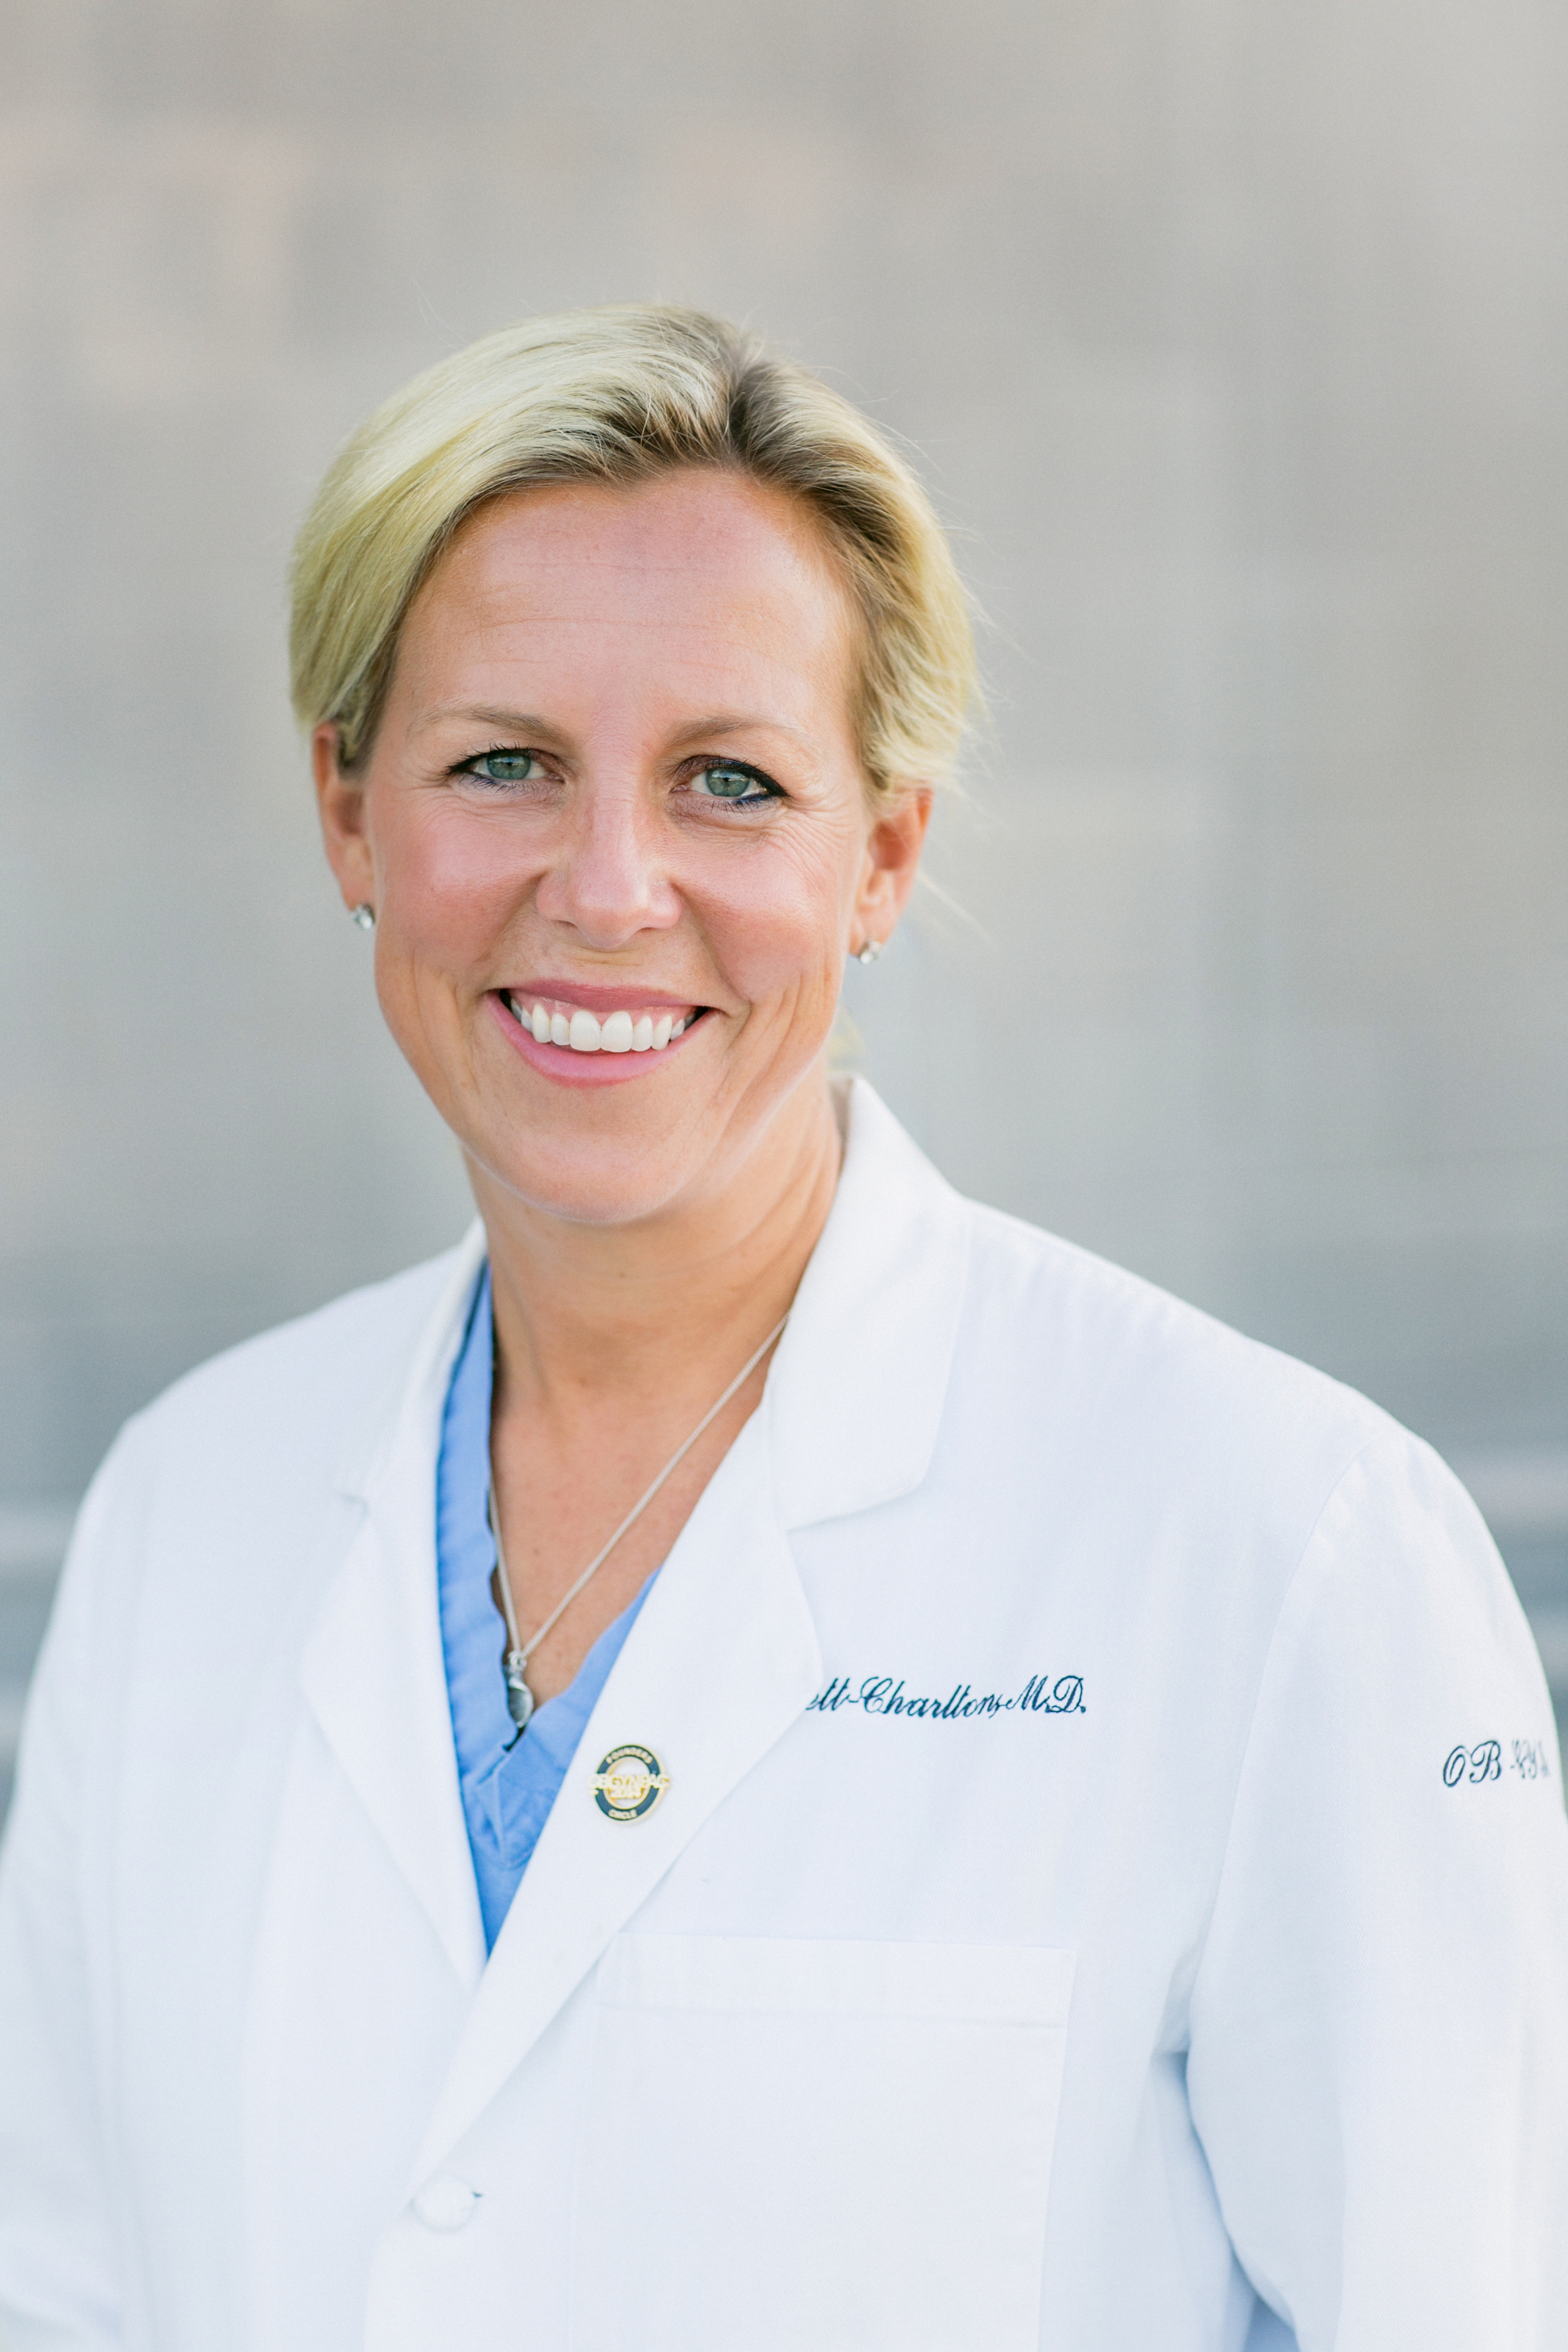 Dr. Coslett-Charlton specializes in gynecology, with an emphasis on minimally invasive surgery and  da Vinci Robotics.